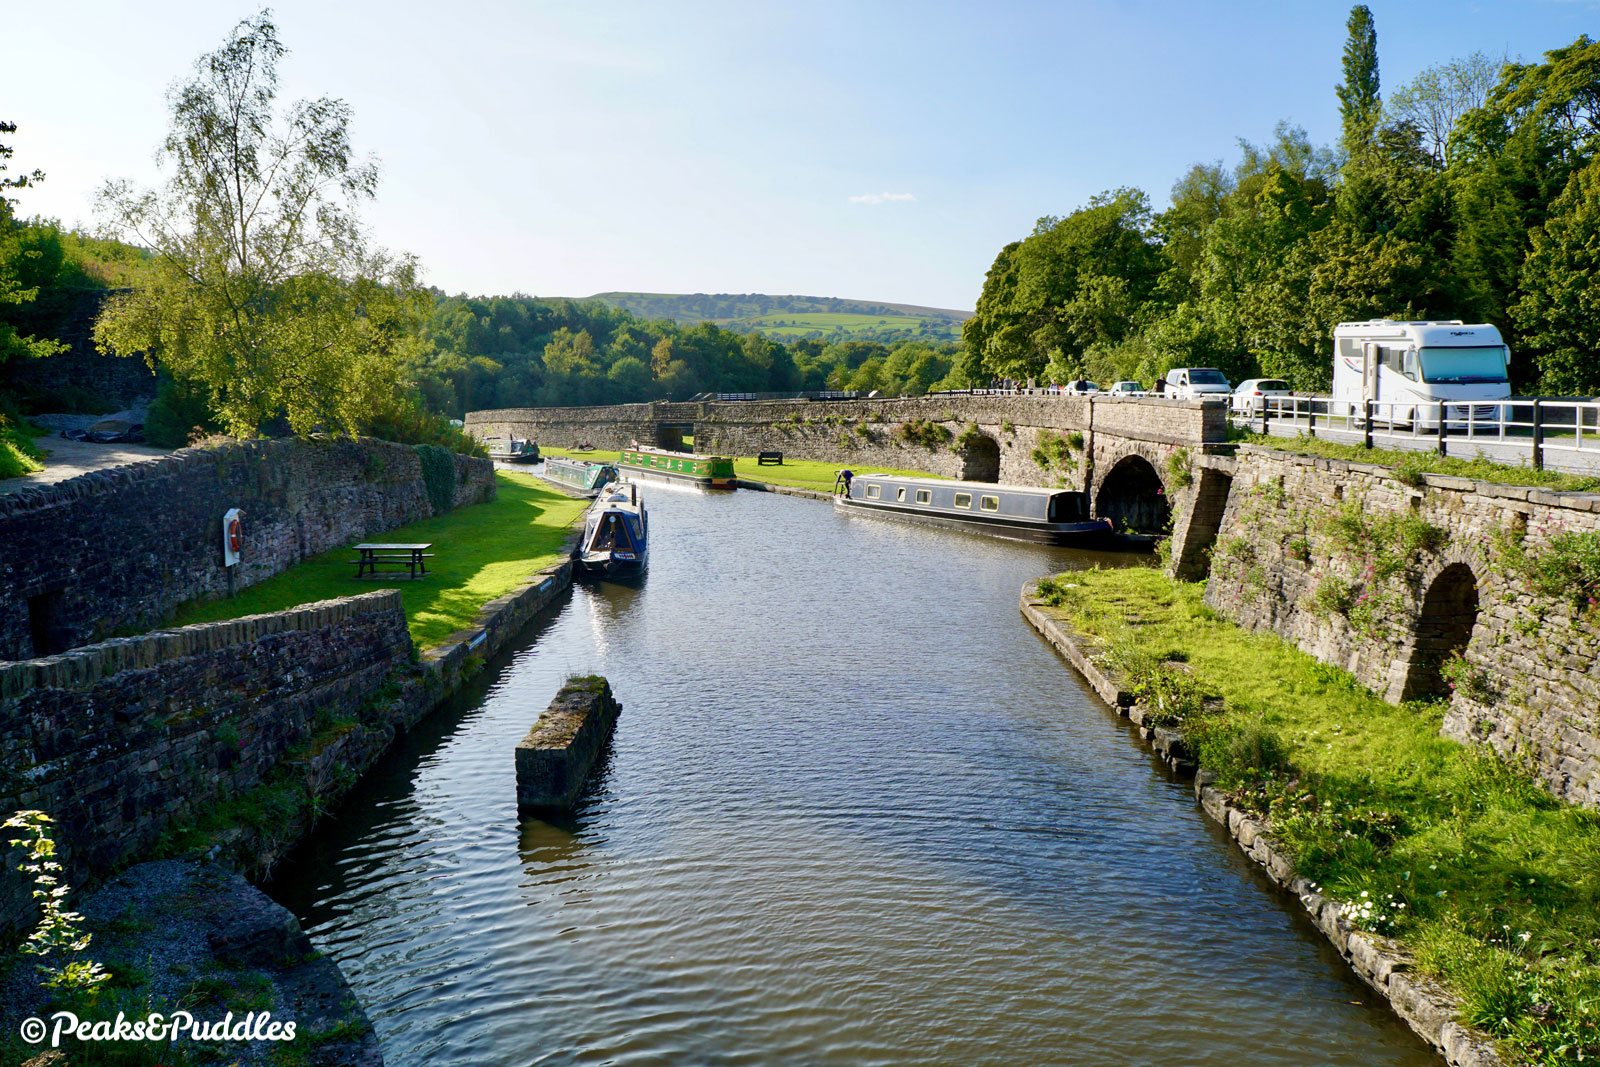 Brookside crosses Bugsworth Basin on the final bridge of the Peak Forest Canal, number 61 (Chinley Road Bridge).